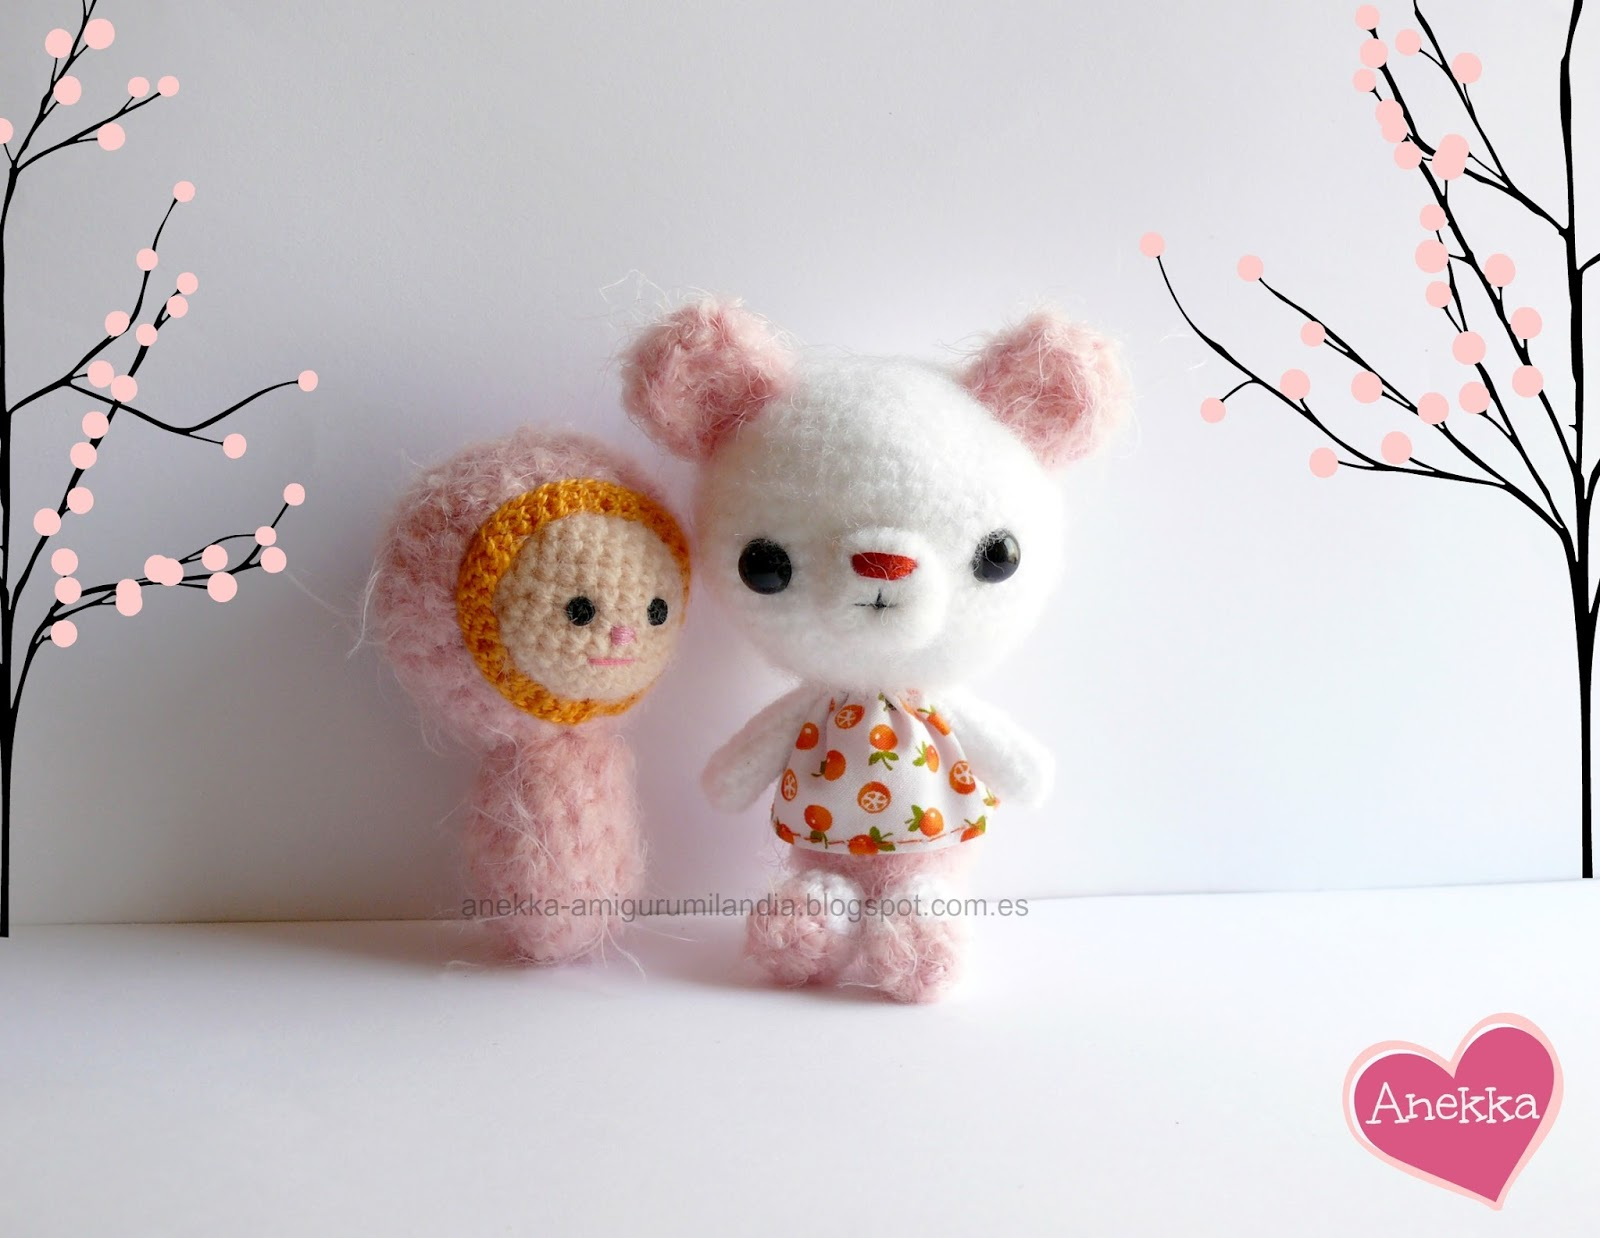 cute amigurumi  pink and white